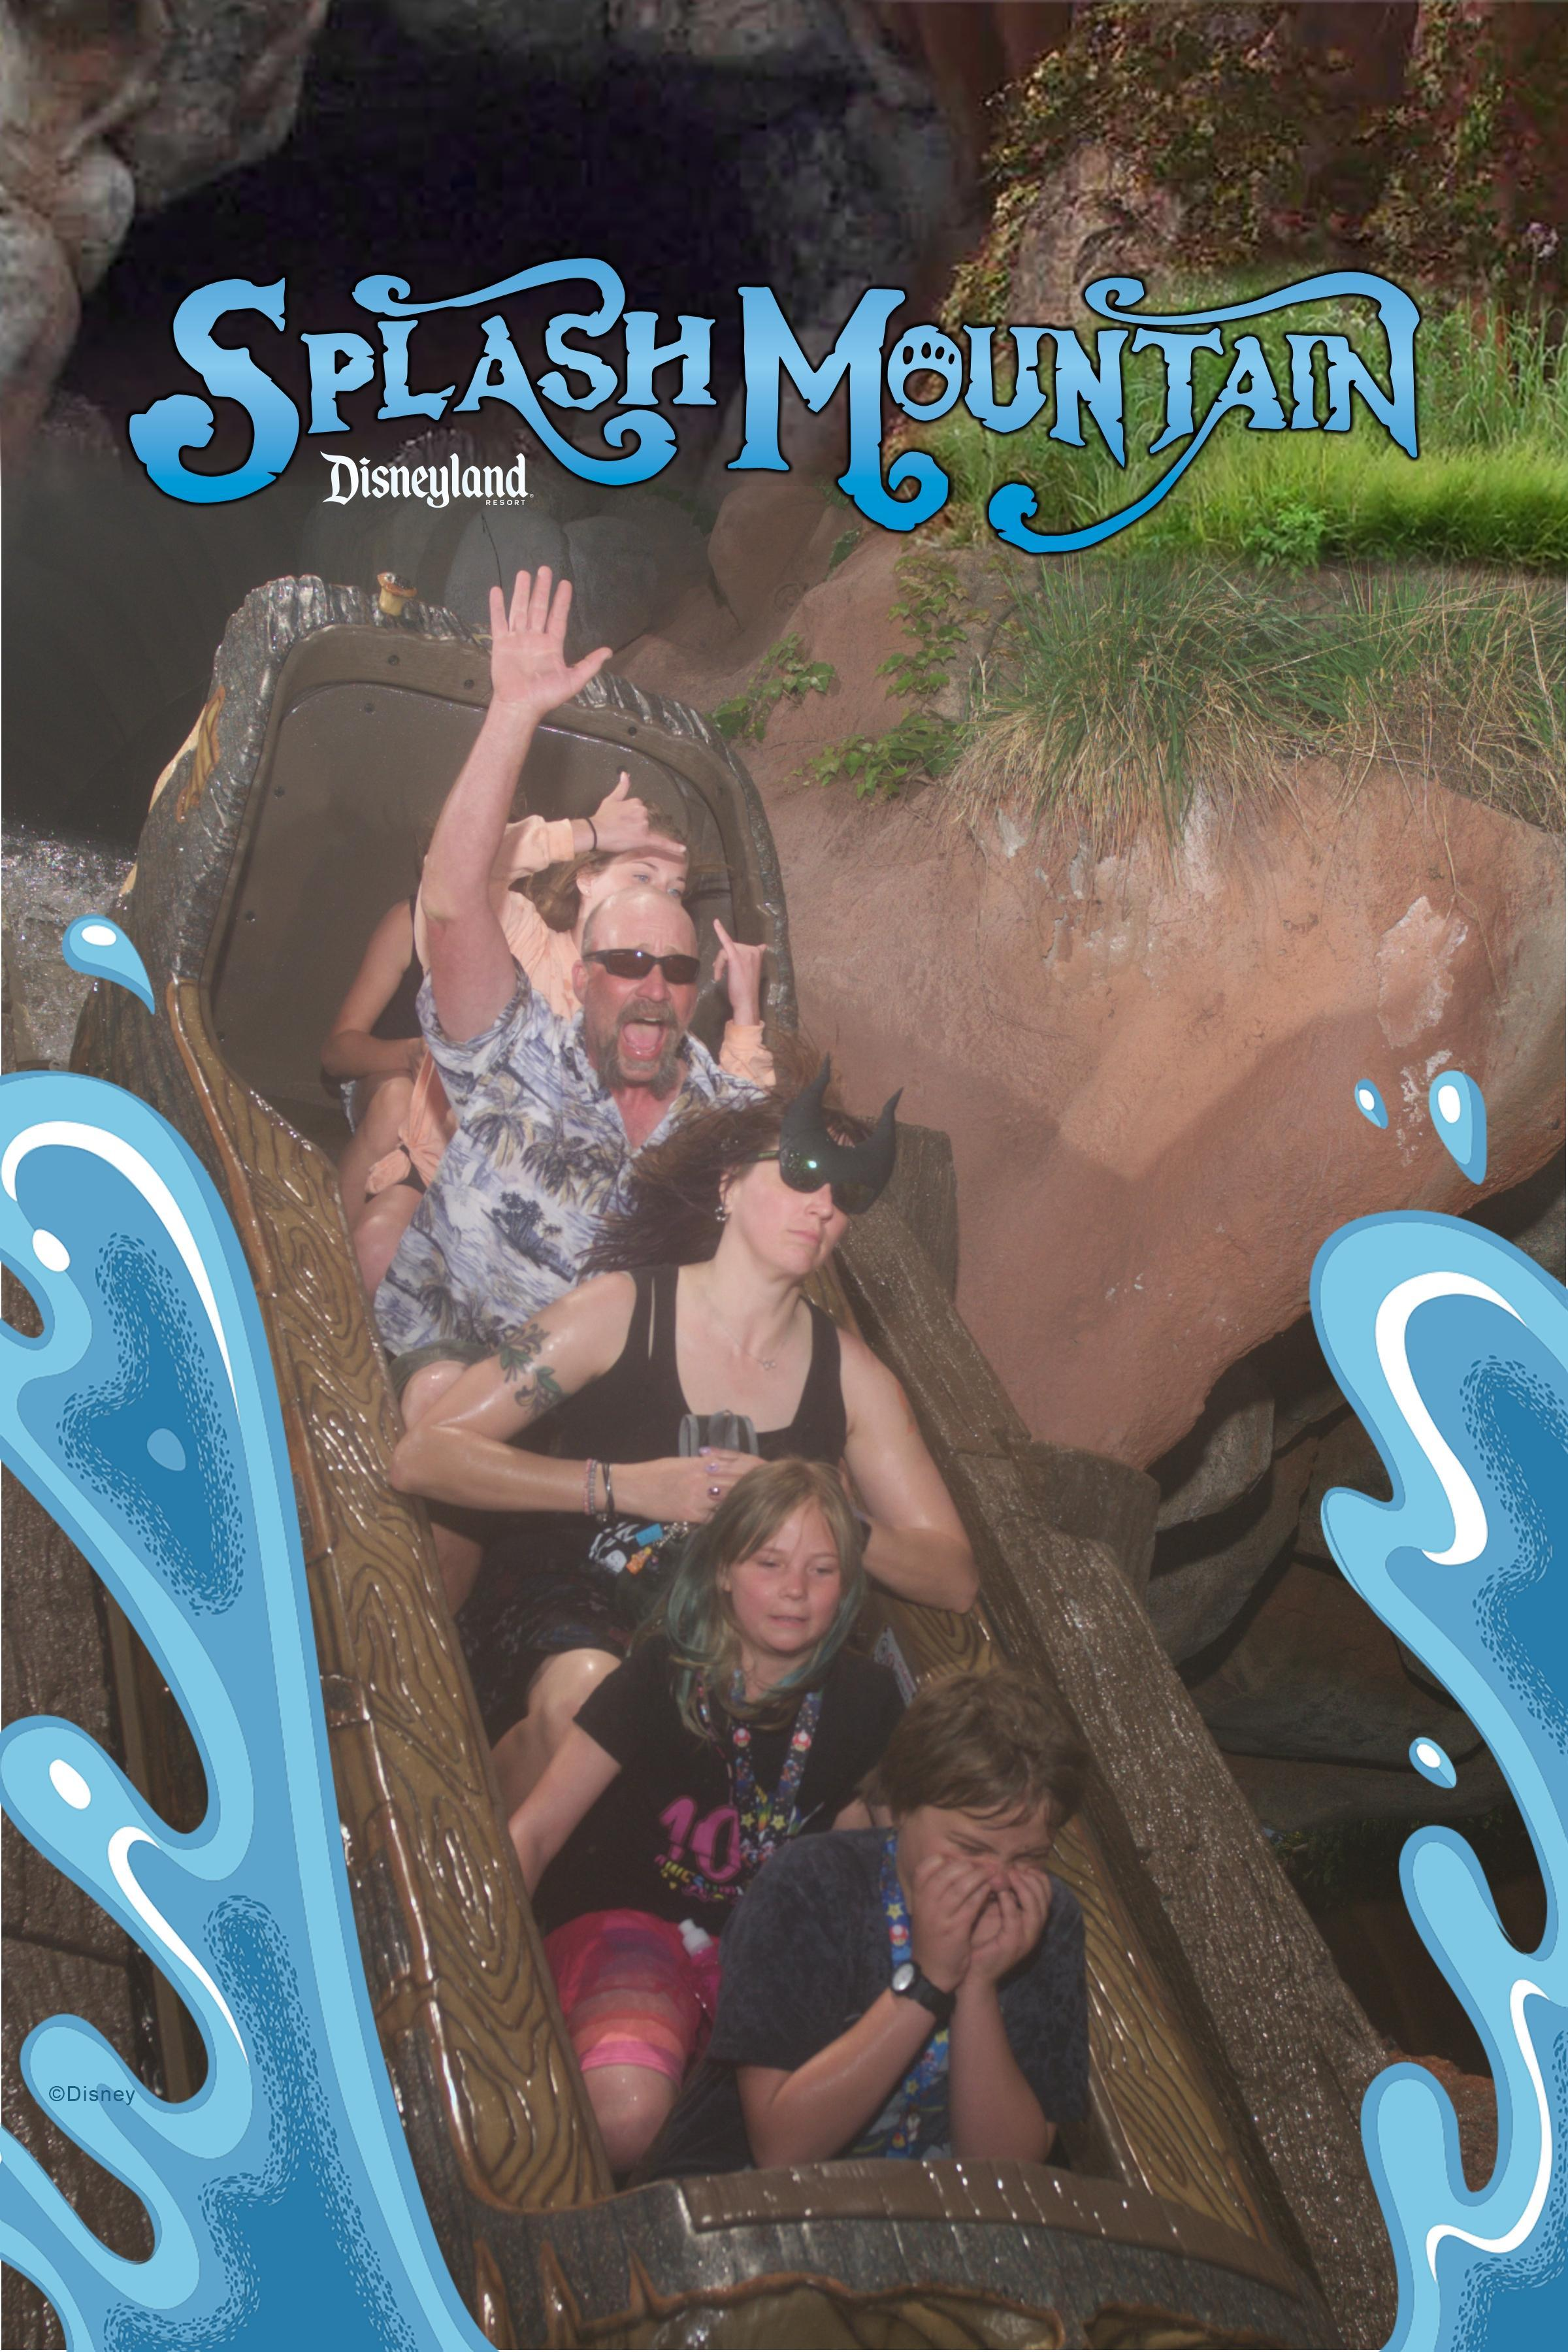 Splash Mountain is AWESOME!!